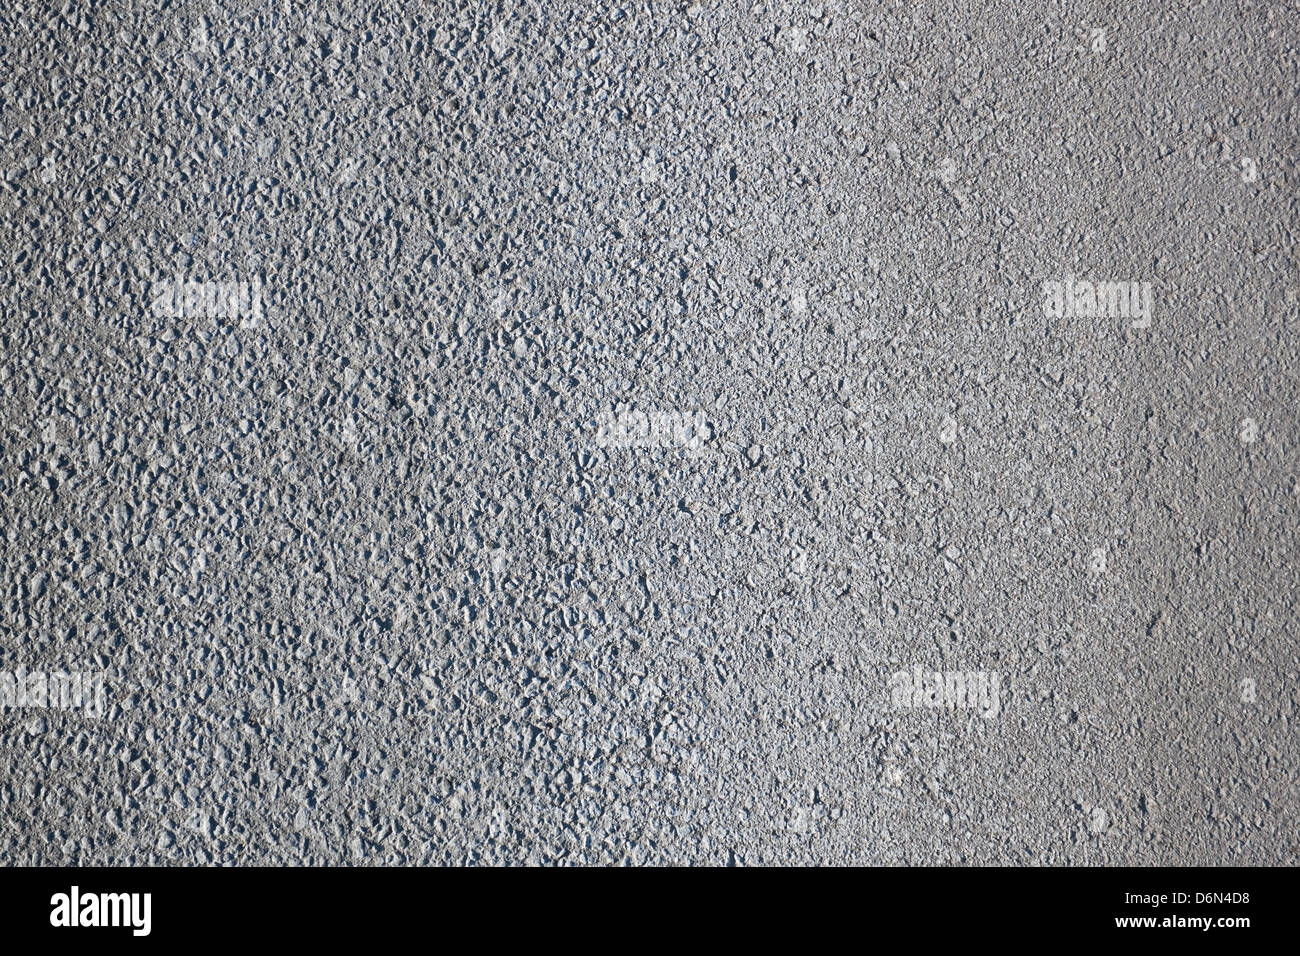 Pattern of the grainy asphalt surface - Stock Image